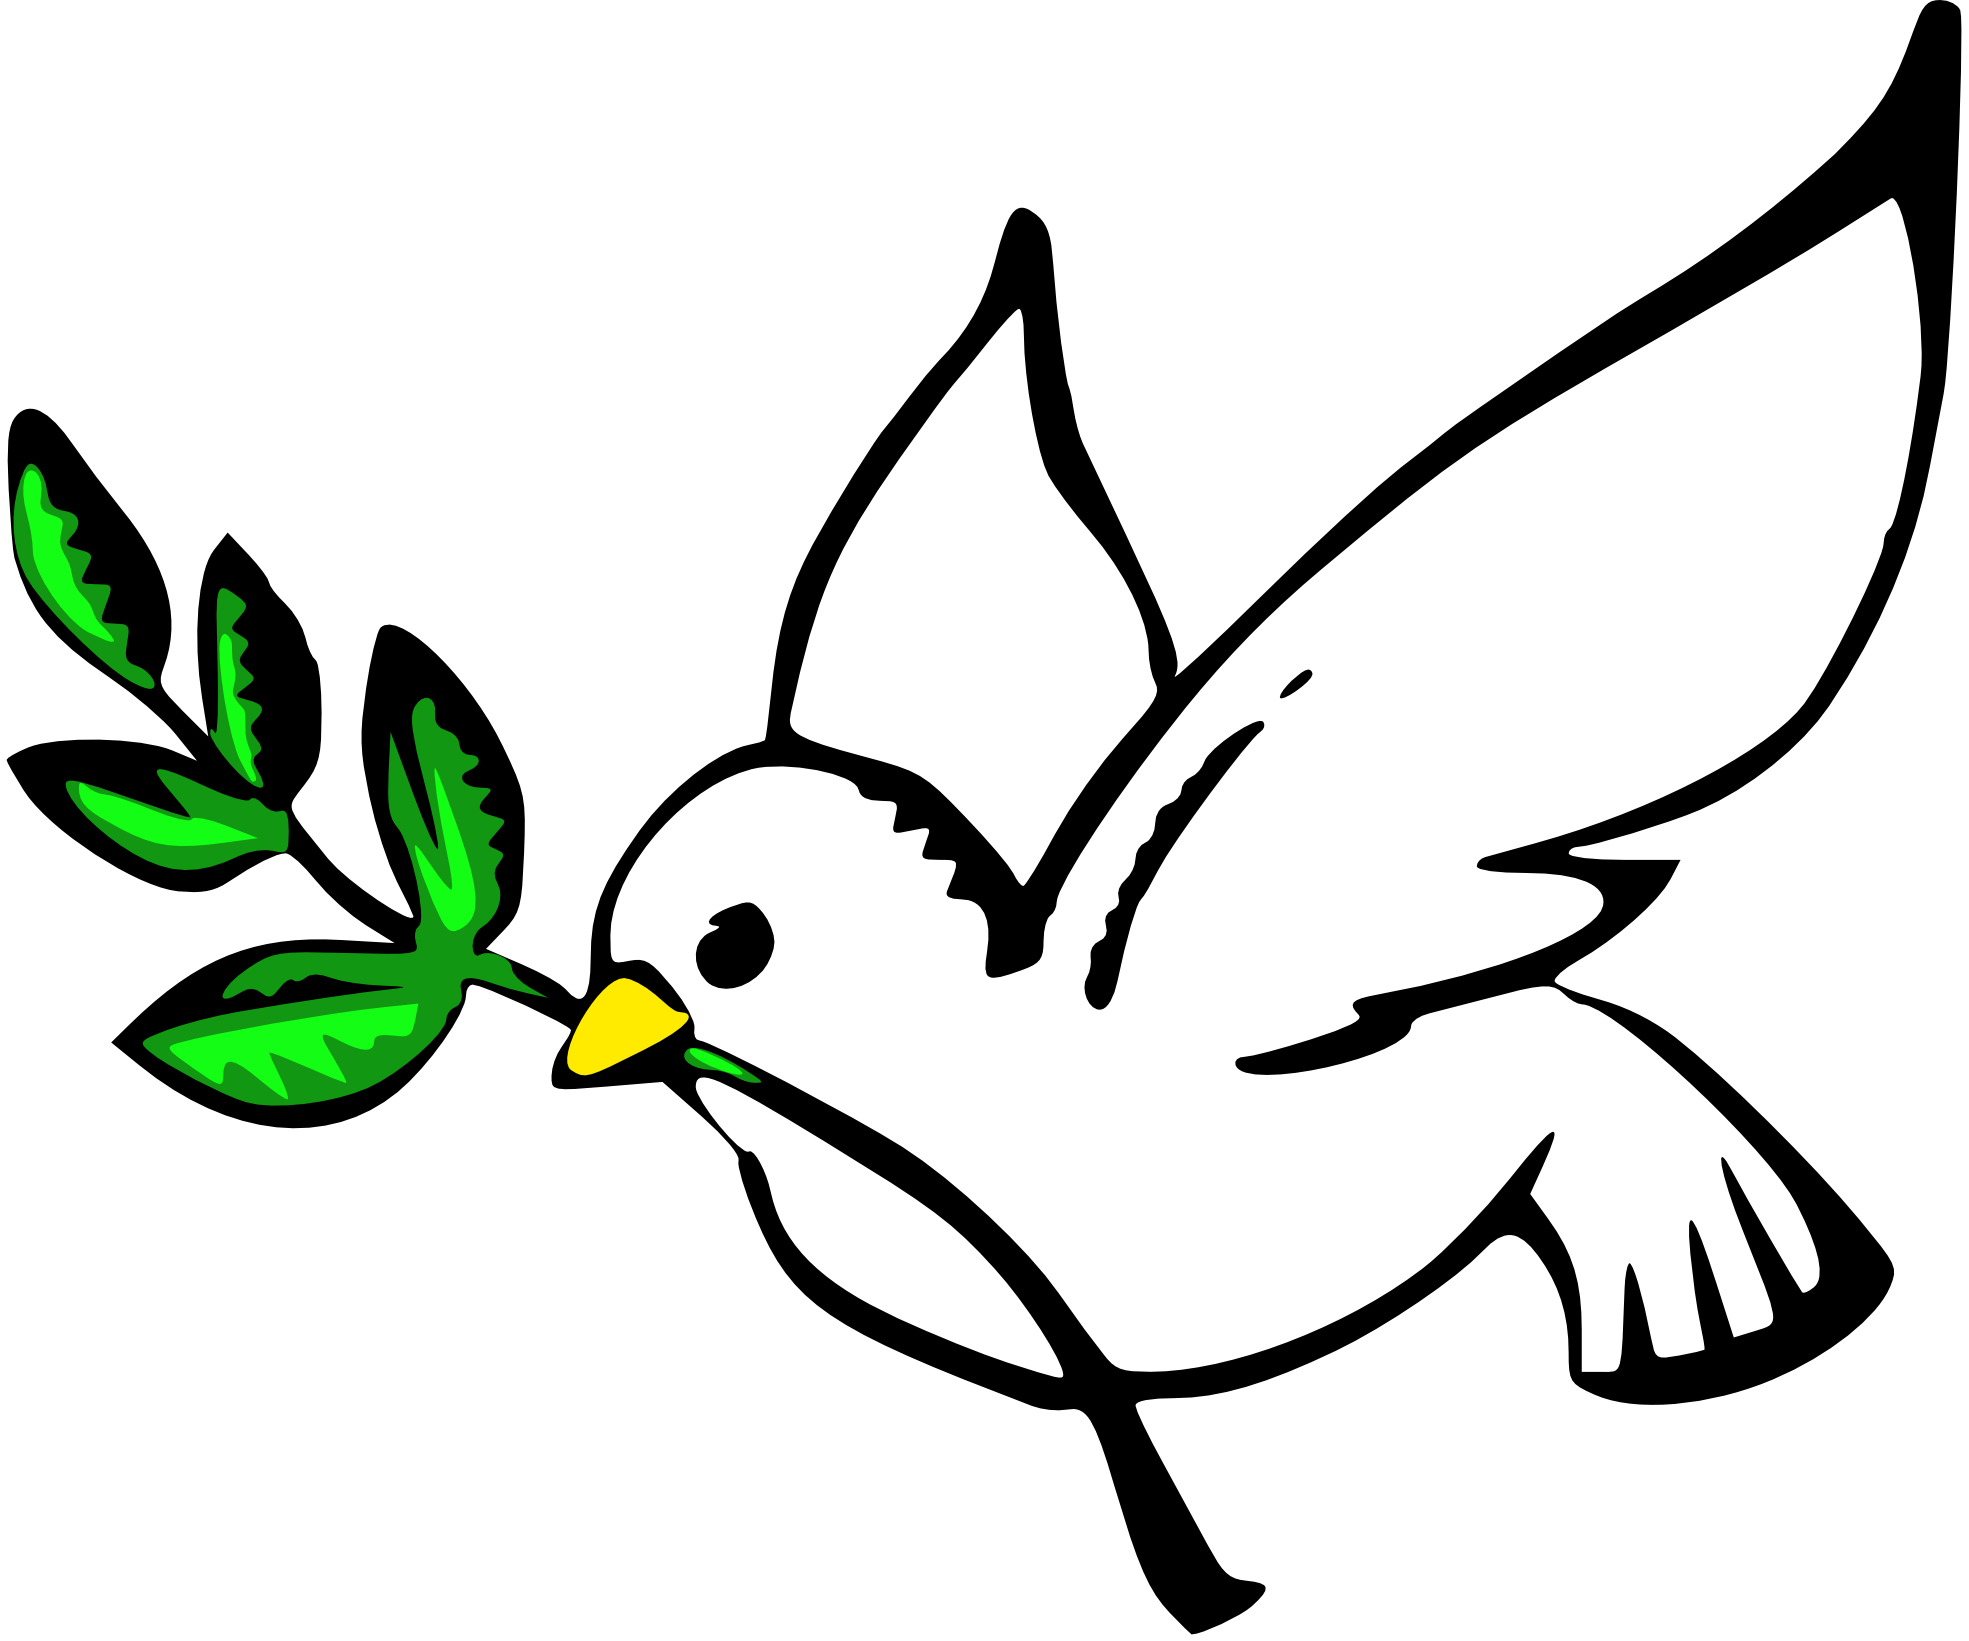 A Dove With An Olive Branch In Its Beak Is A Universal Symbol Of A